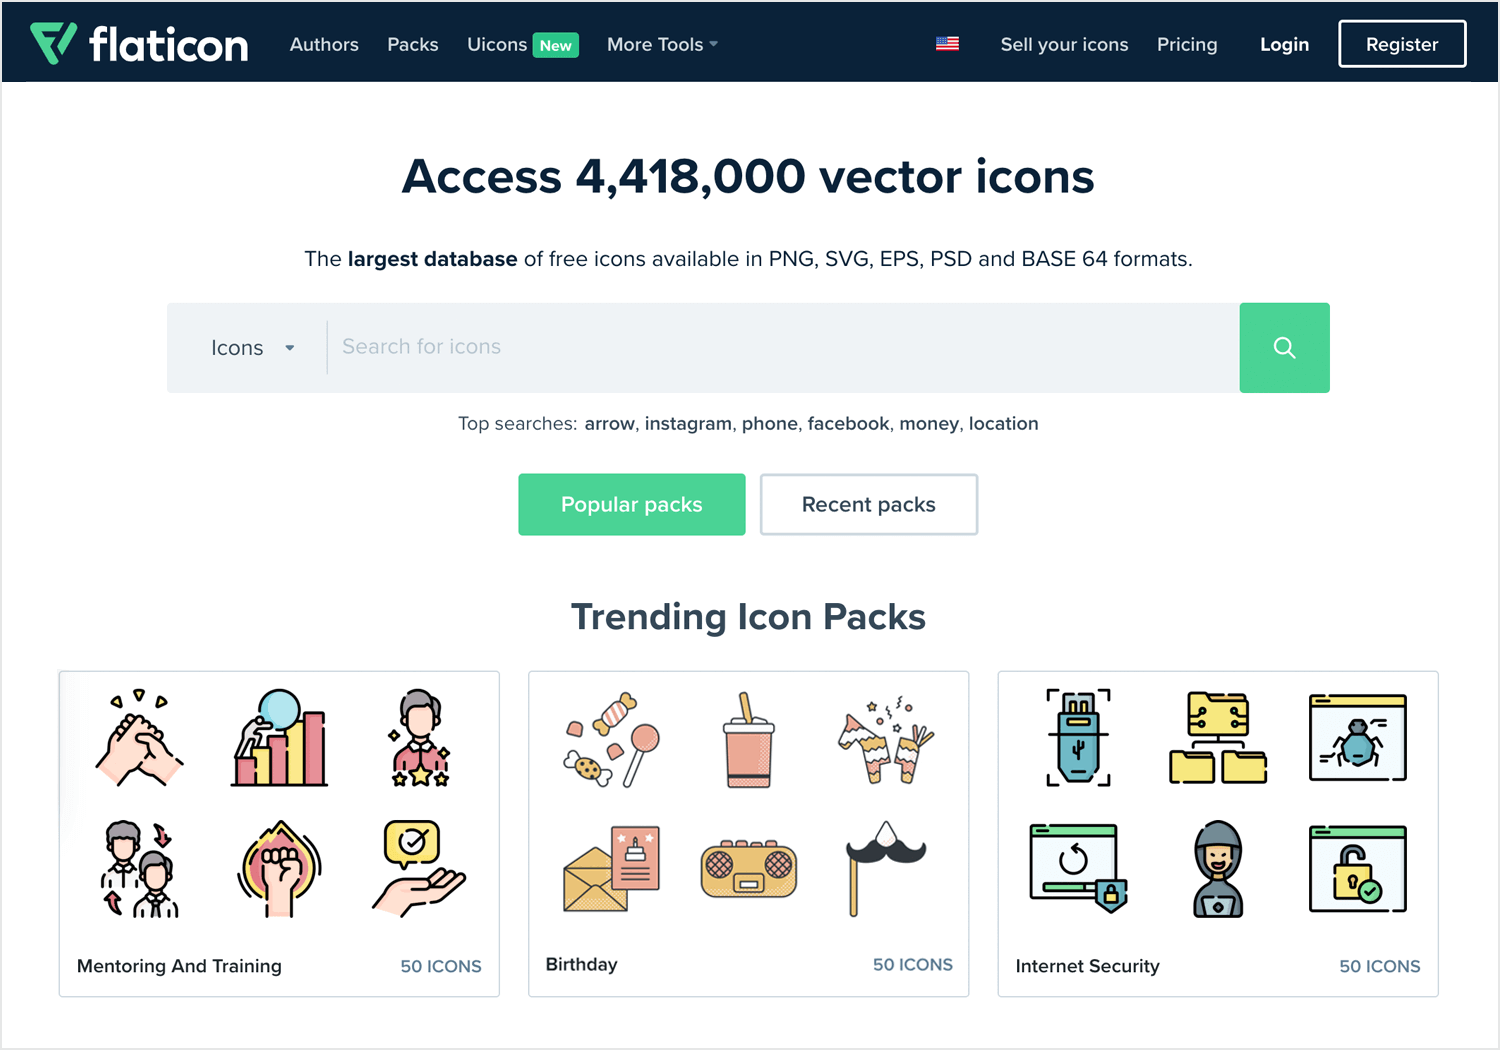 flaticon as place for free app icons